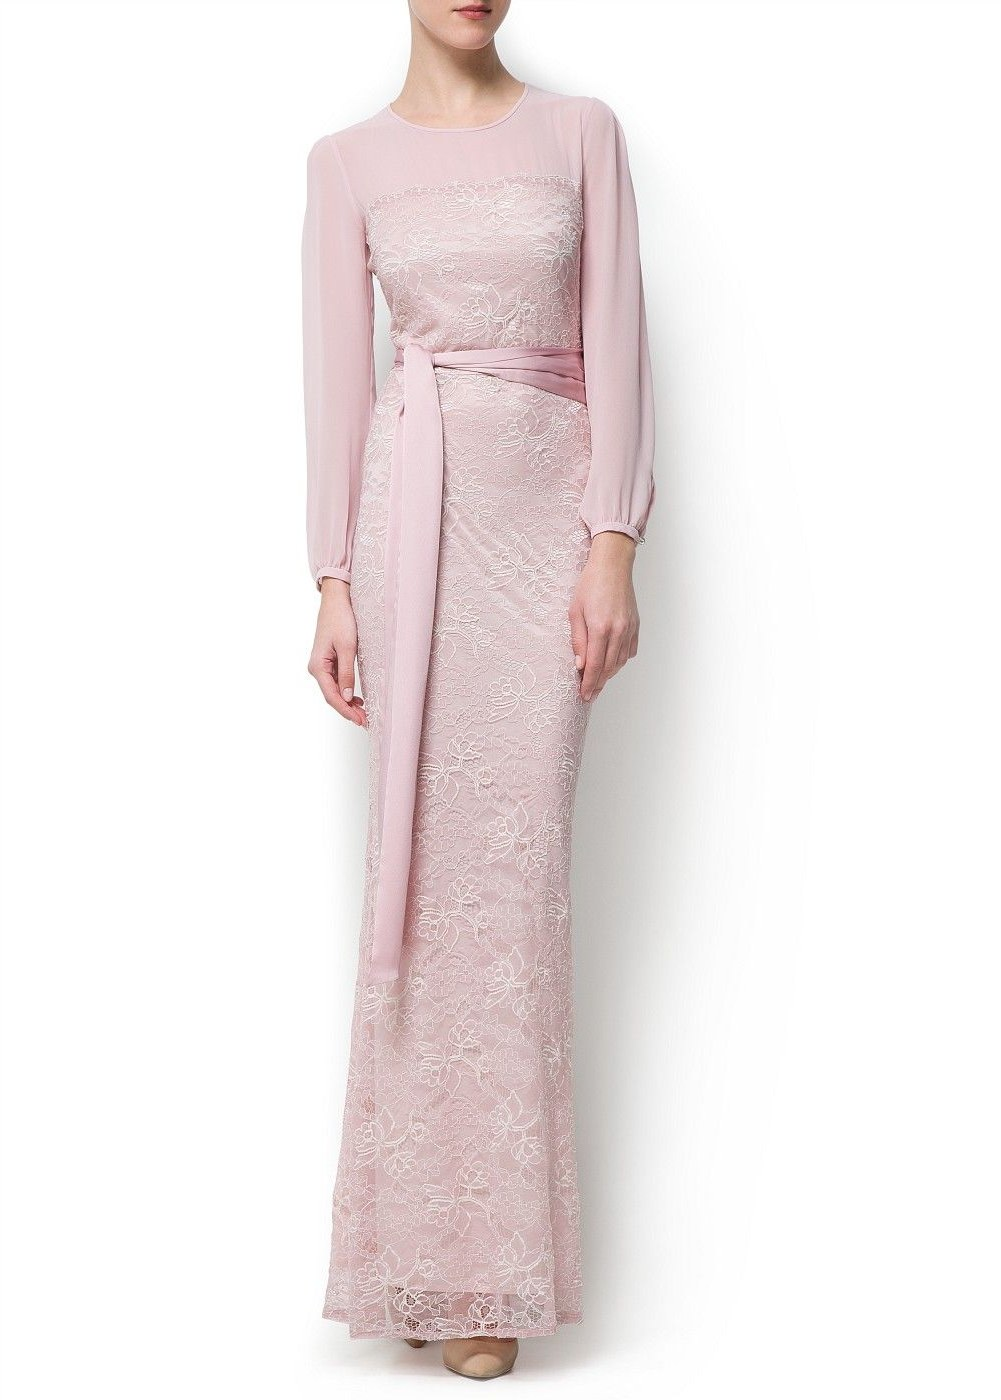 Model Model Bridesmaid Hijab 2019 Irdz Lace Gown Woman In 2019